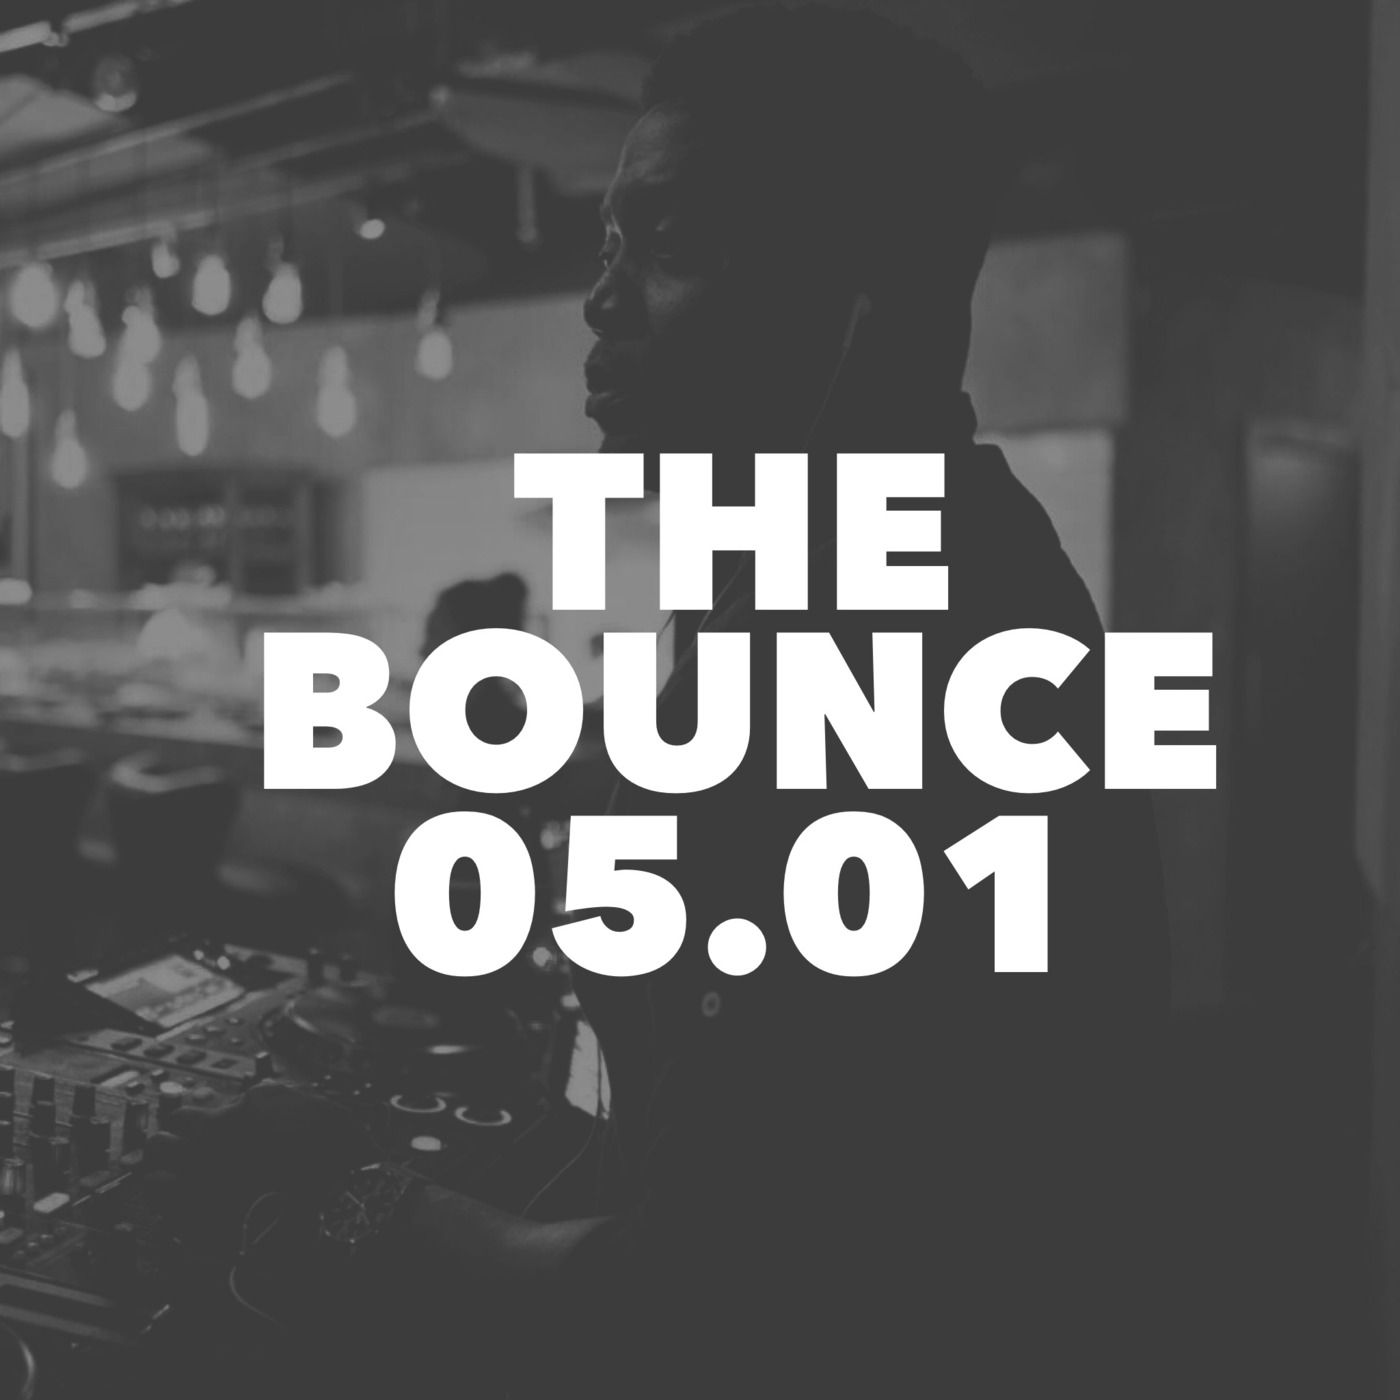 THE BOUNCE 05 JAN 2018 Dj Crown Prince podcast